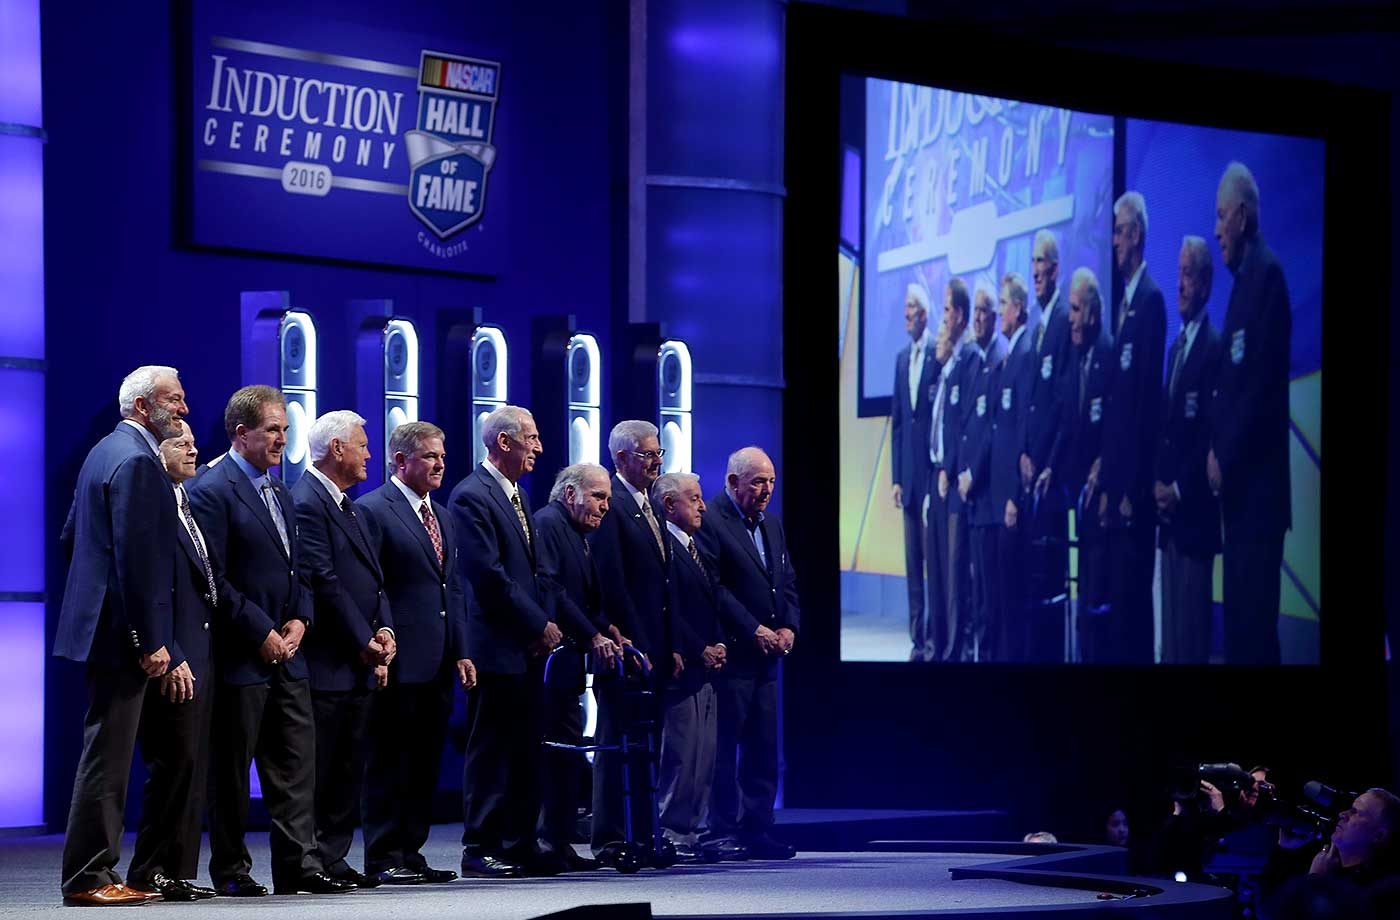 The NASCAR Hall of Fame inductees from year's past join the newest inductees on stage at the Charlotte Convention Center .